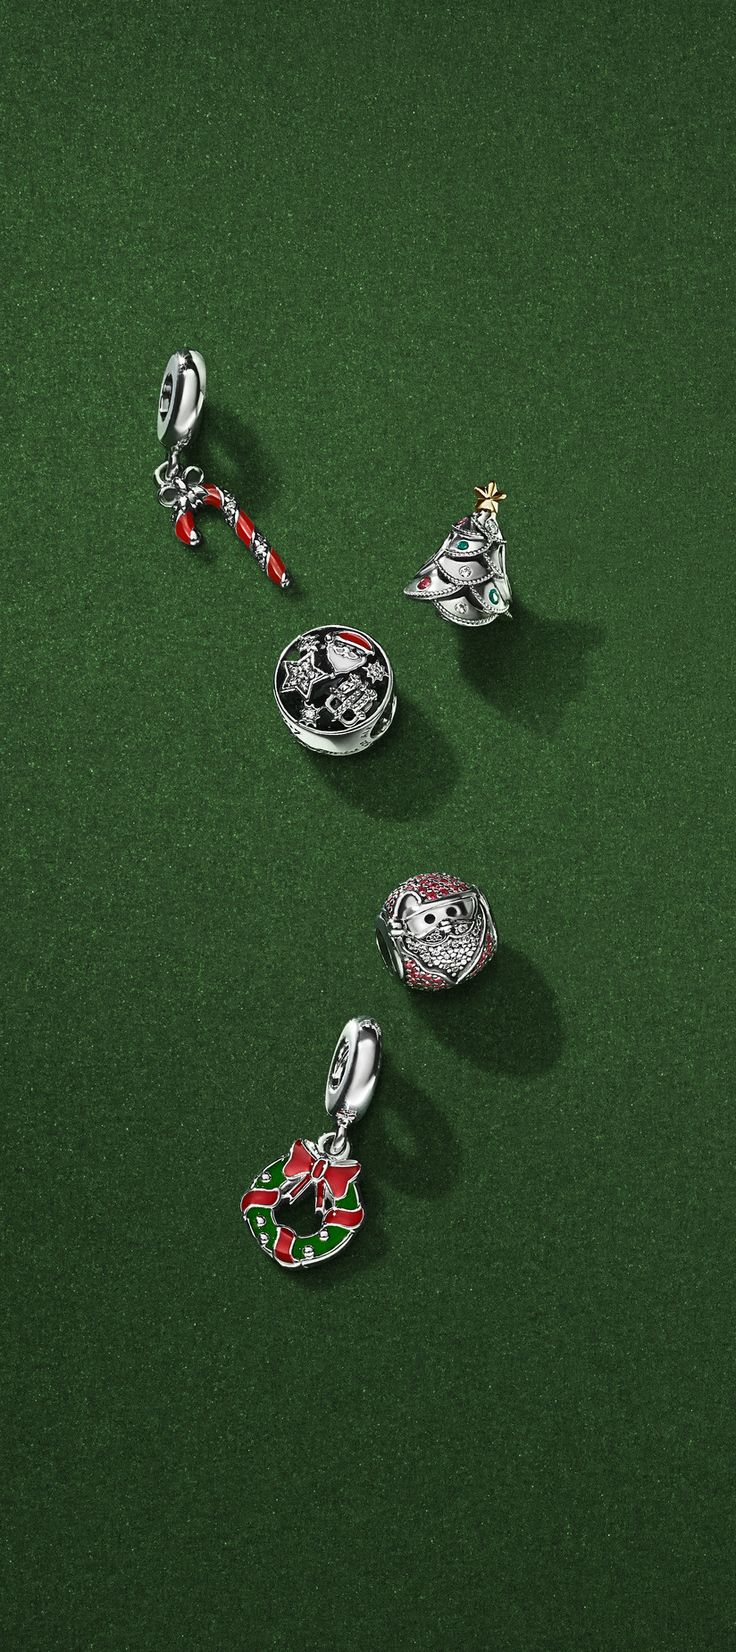 A candy cane, a wreath and a detailed Christmas tree will help you ring in Christmas. Which PANDORA Christmas charms are on your wish list this season?